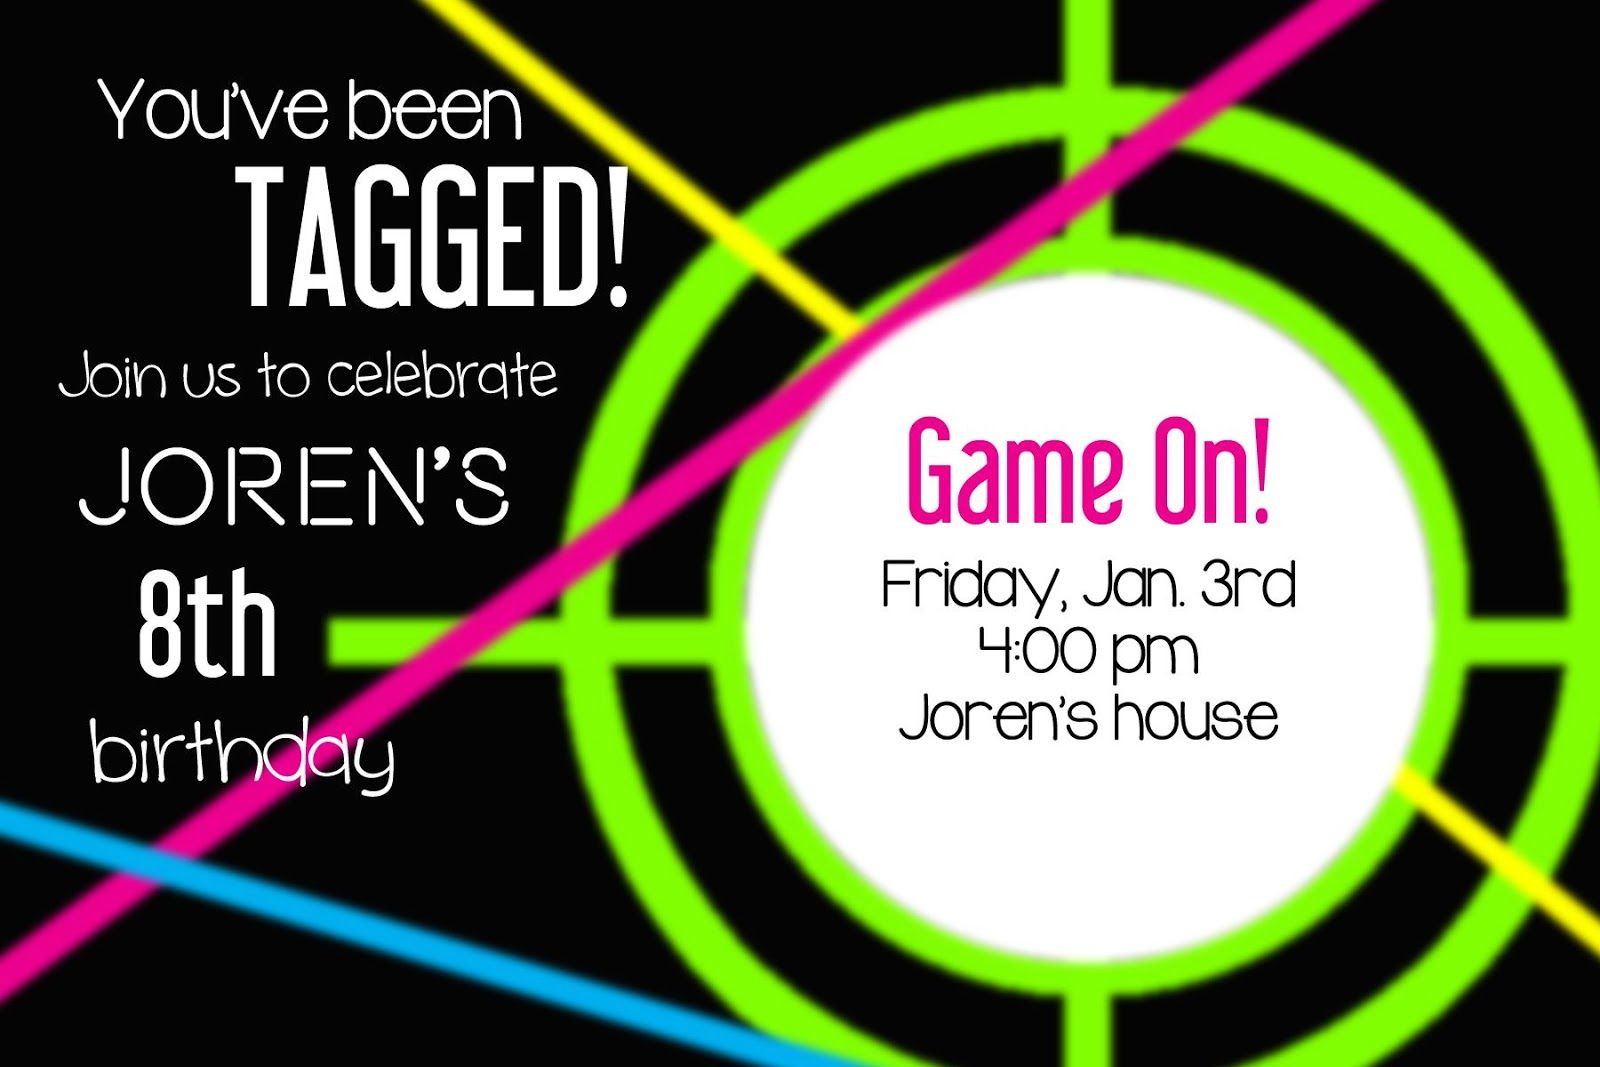 photograph relating to Laser Tag Birthday Invitations Free Printable named Larcie Fowl: Neon Laser Tag Birthday Occasion Laser Tag